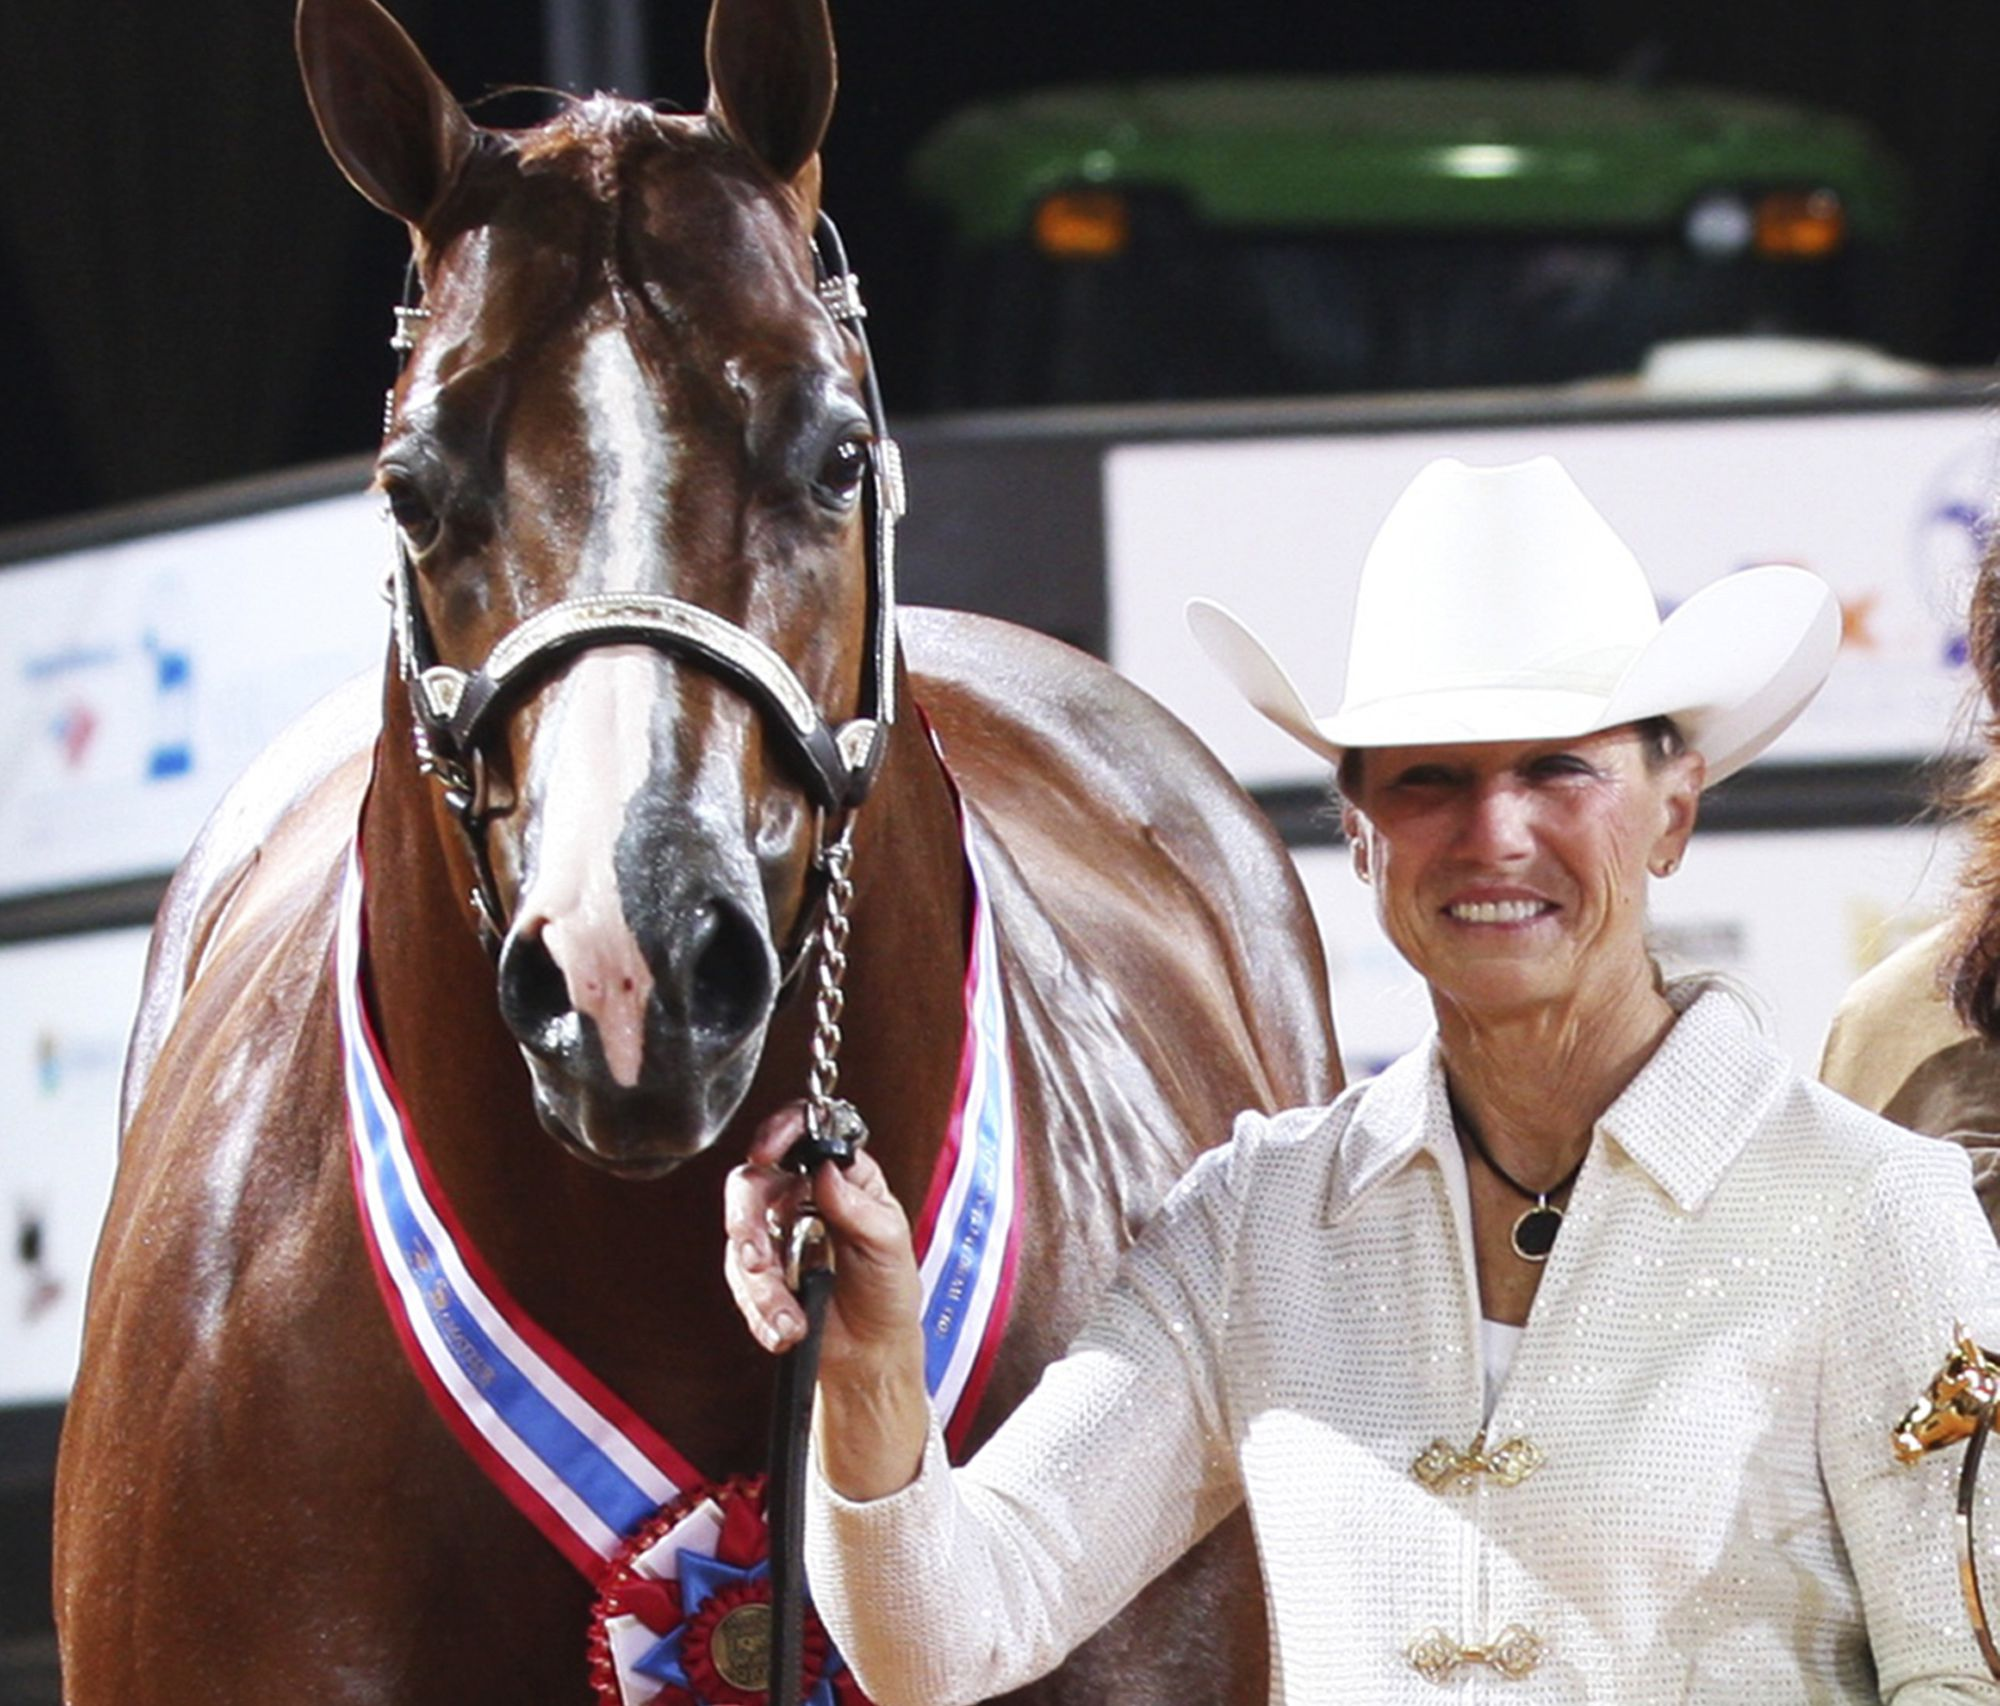 This November 2011 photo shows Rita Crundwell, of Dixon, Ill., posing with Pizzazzy Lady at the 2011 American Quarter Horse Association World Championship Show in Oklahoma City. Crundwell is accused stealing $53 million from the city in northern Illinois by siphoning public funds into a secret bank account opened in 1990 while she was Dixon's comptroller. A judge on Thursday, May 3, 2012, granted the government's request for forfeiture of the 311 animals owned by Crundwell, which are now in the care of U.S. marshals. Federal prosecutors contend she used the funds to sustain a lavish lifestyle and her horse breeding operation. Crundwell was regarded as one of the best horse breeders in the country.